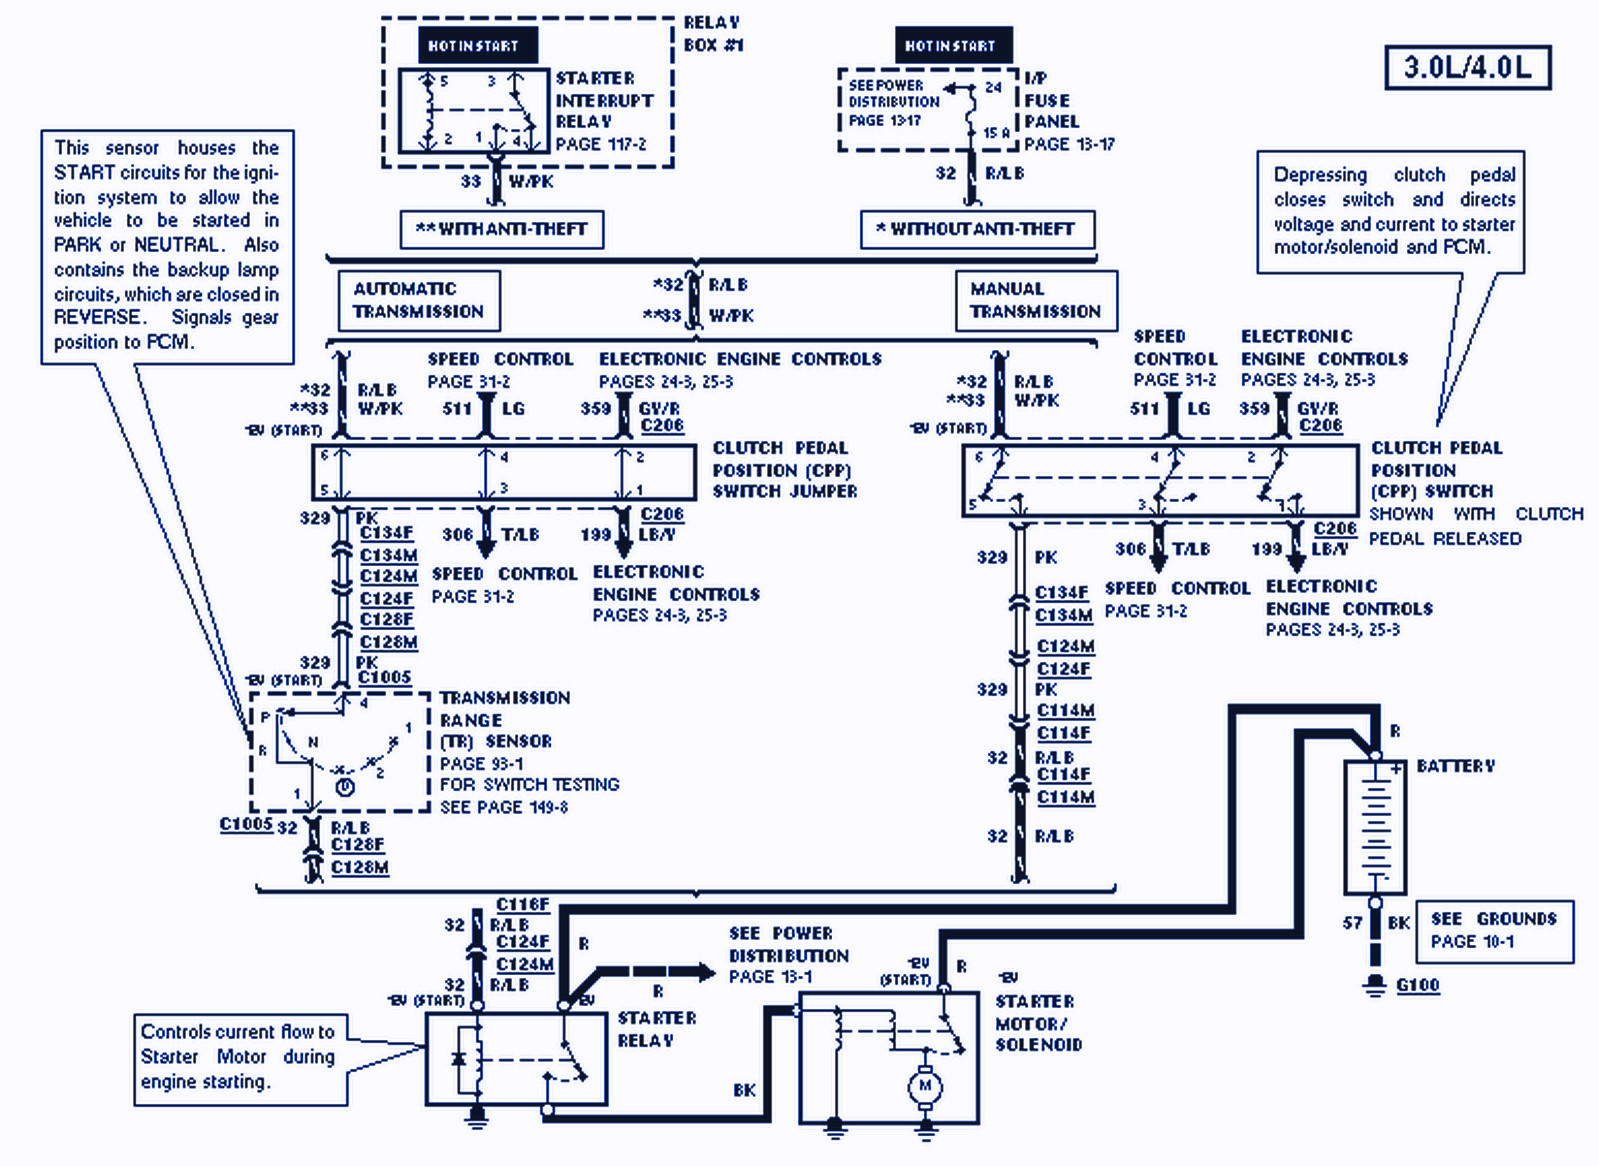 1990 ford f800 fuse diagram wiring diagram sheet 1999 ford f800 wiring diagram 1990 ford f800 [ 1599 x 1166 Pixel ]